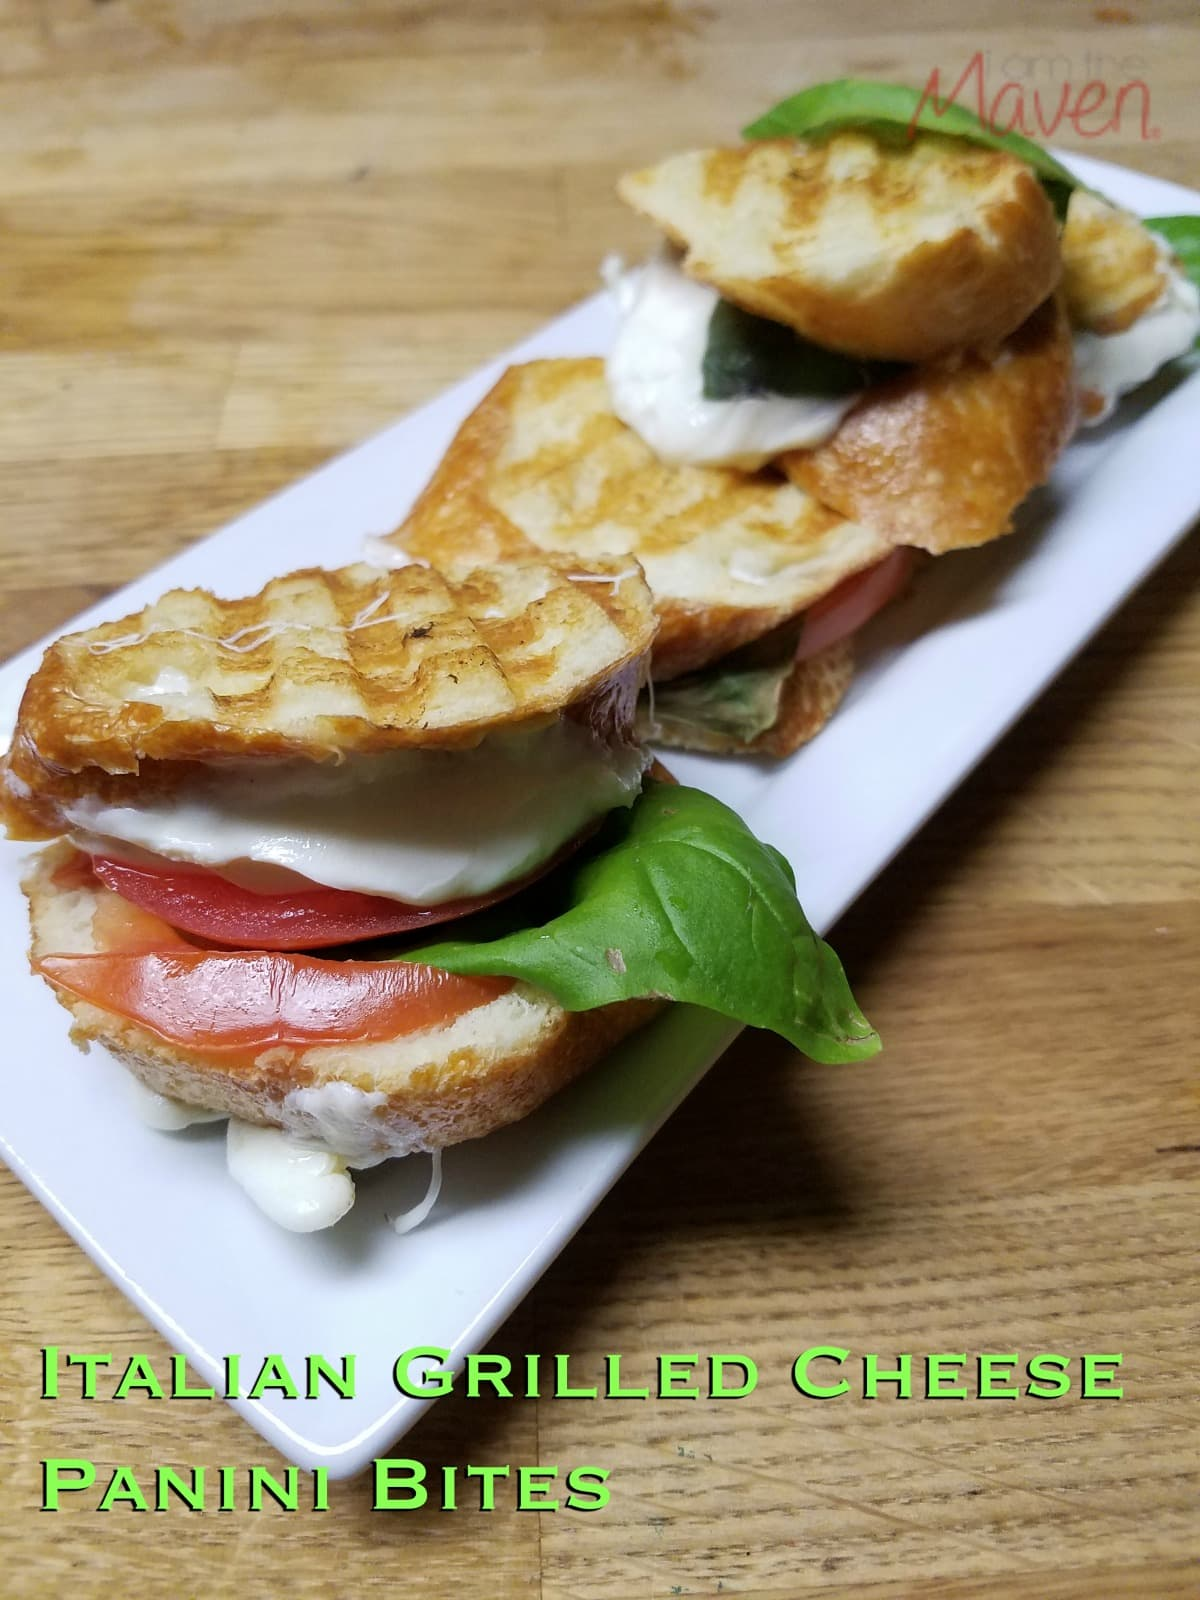 You'll love these Italian Grilled Cheese Panini Bites! #MakeMoreofMealtime ad